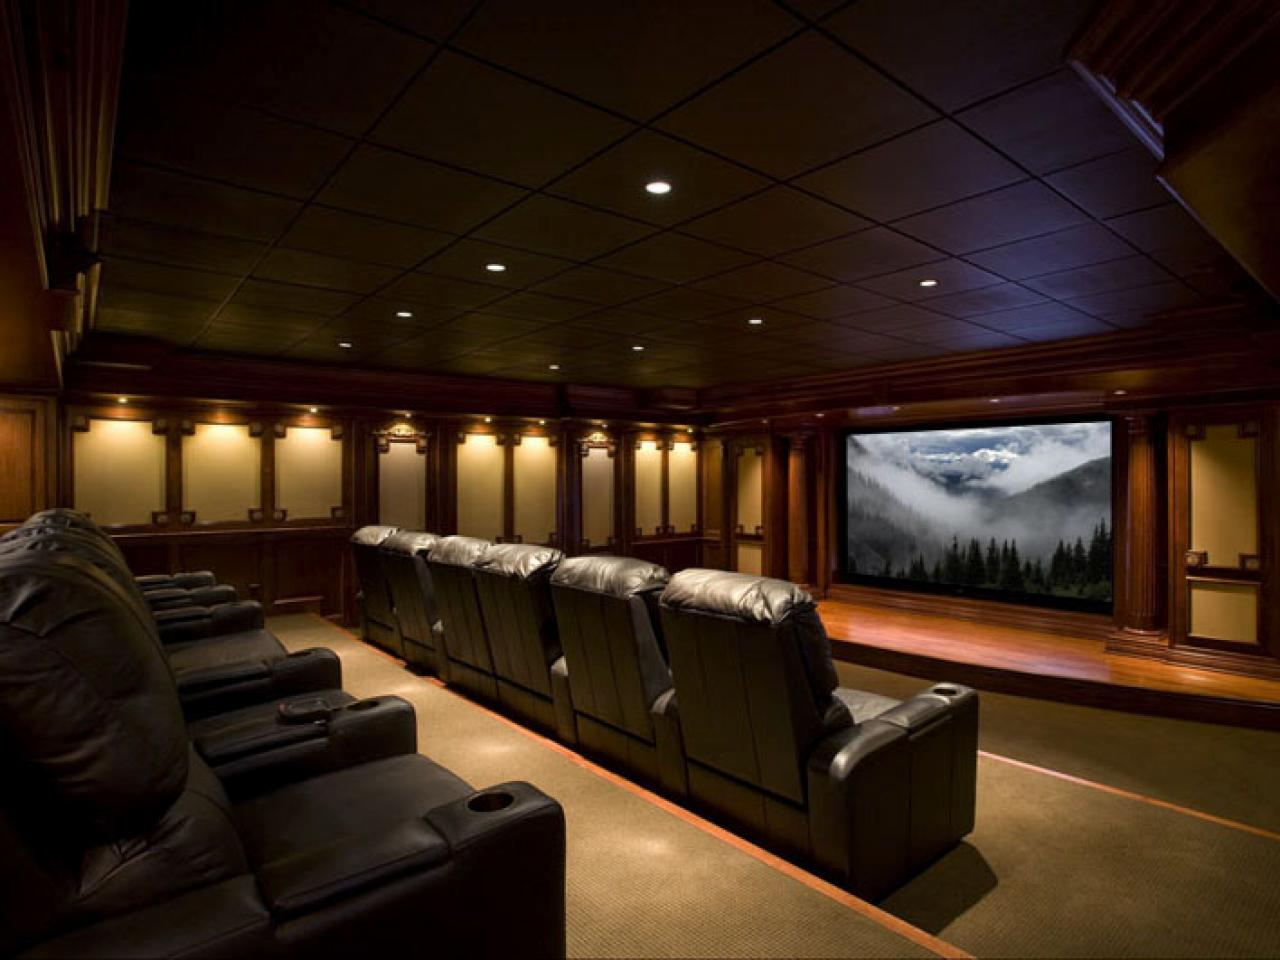 Media rooms and home theaters by budget home remodeling Theater rooms design ideas